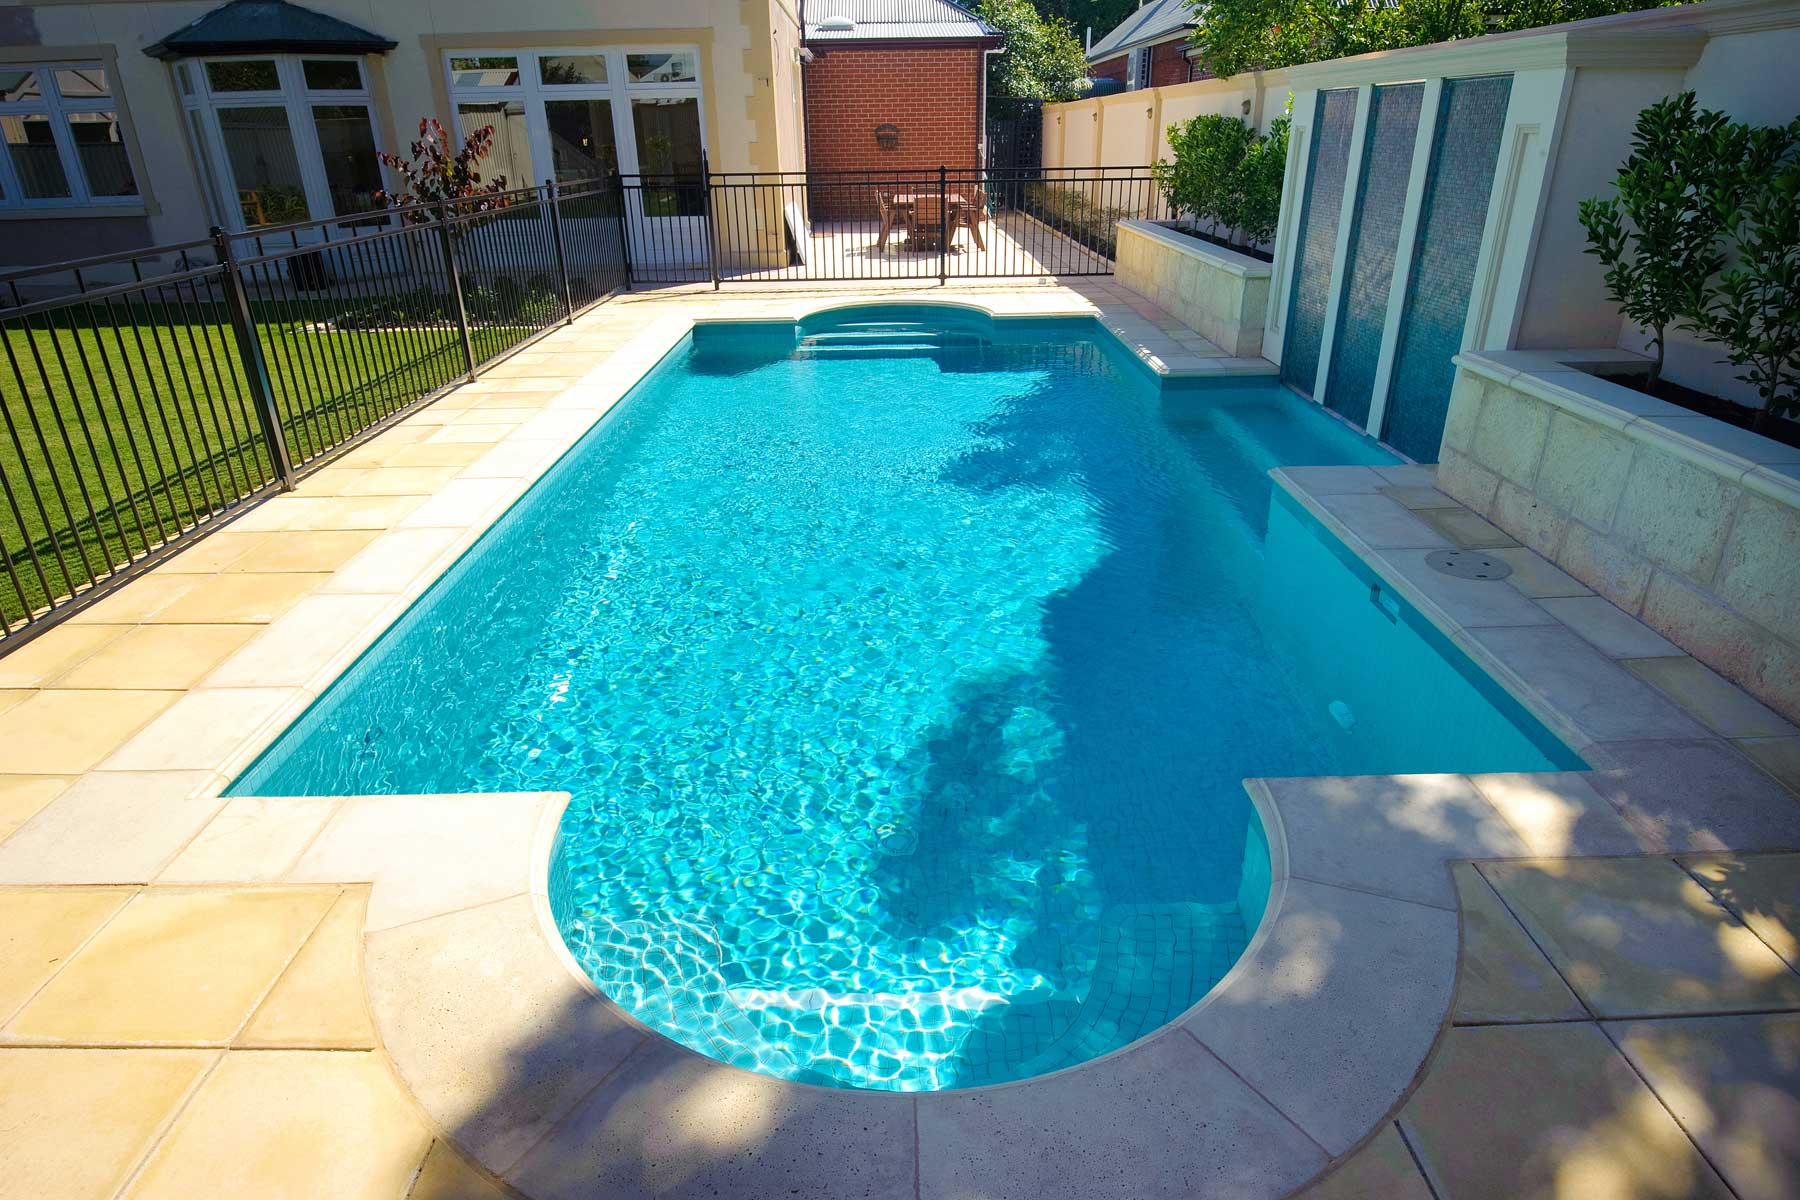 Tiled Pool and Water Feature